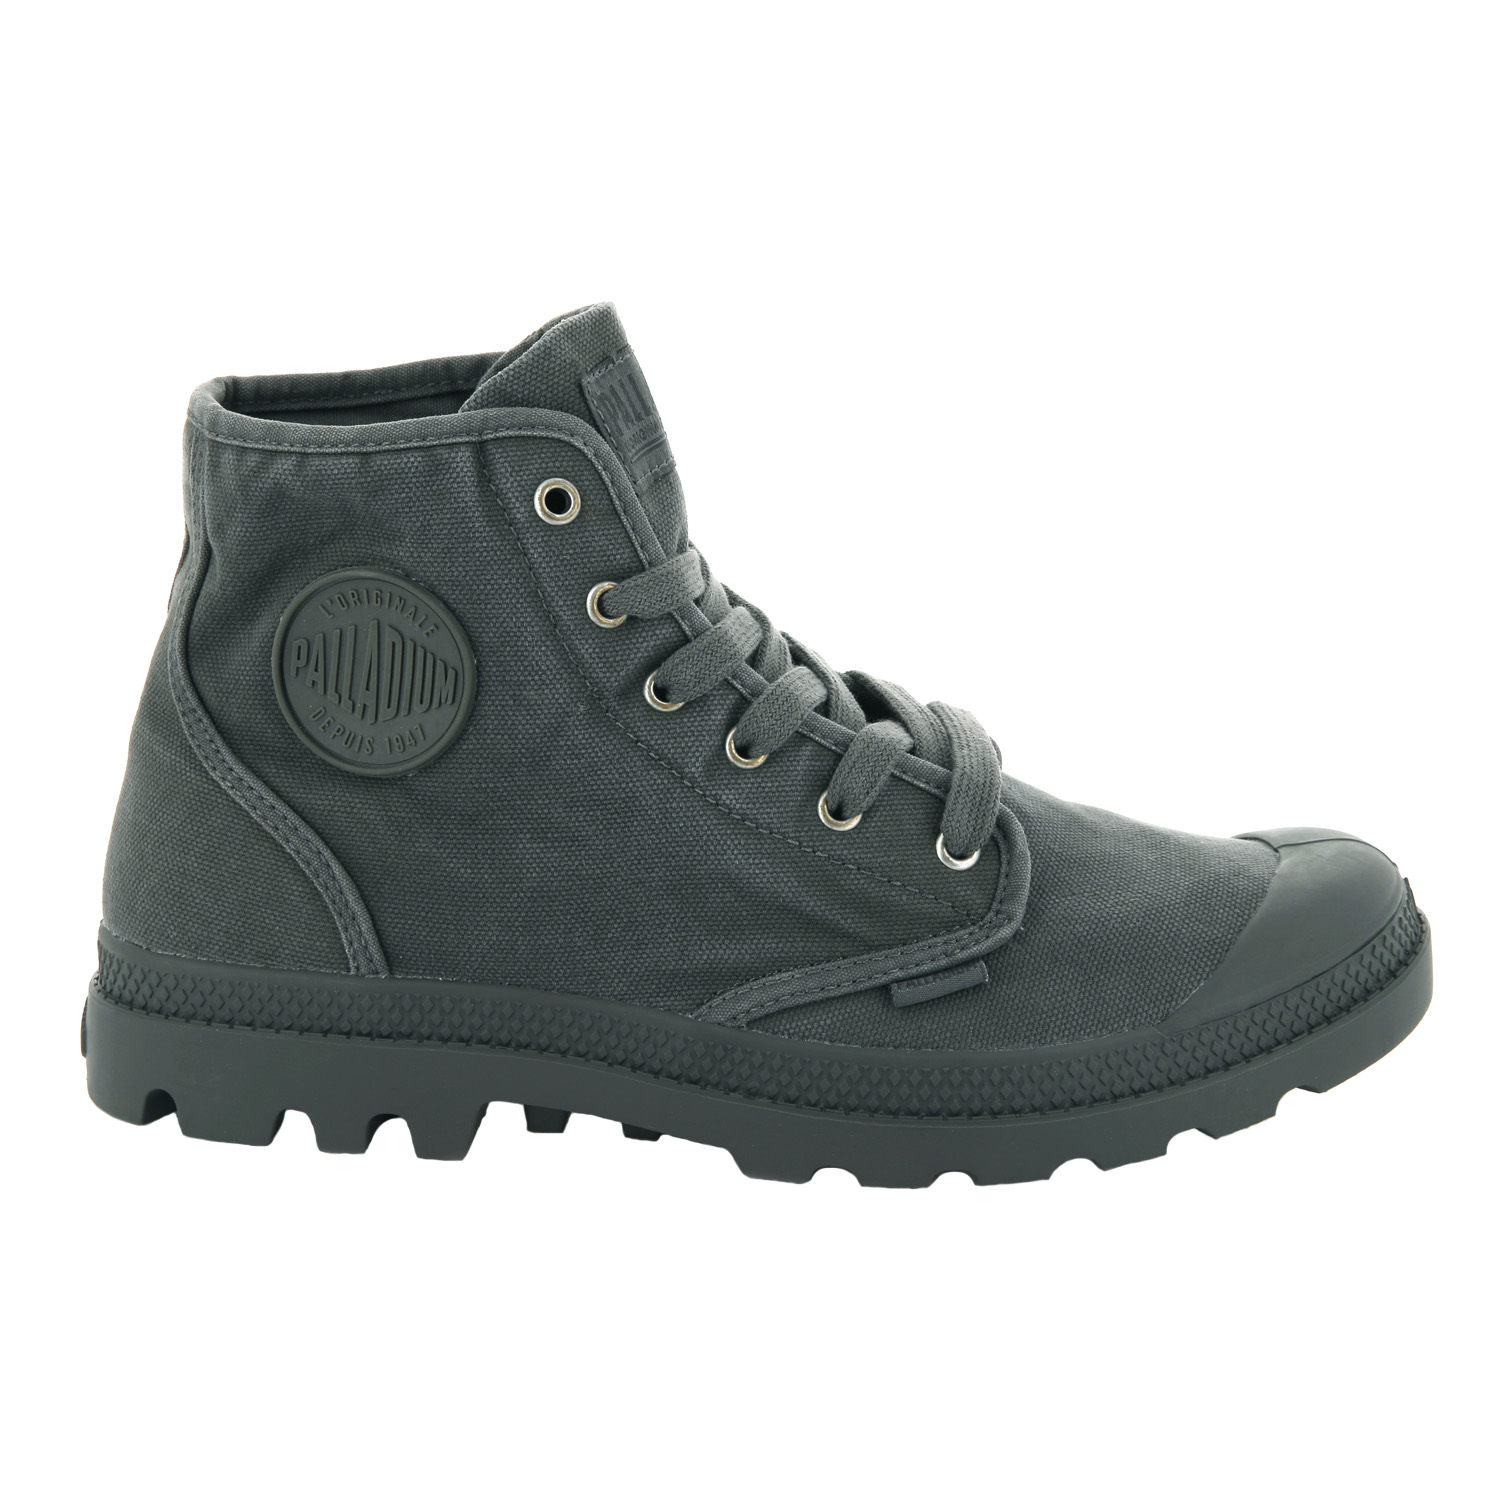 Palladium-Mens-Pampa-Hi-Canvas-Shoes-Casual-Walking-High-Top-Lace-Up-Ankle-Boots thumbnail 44